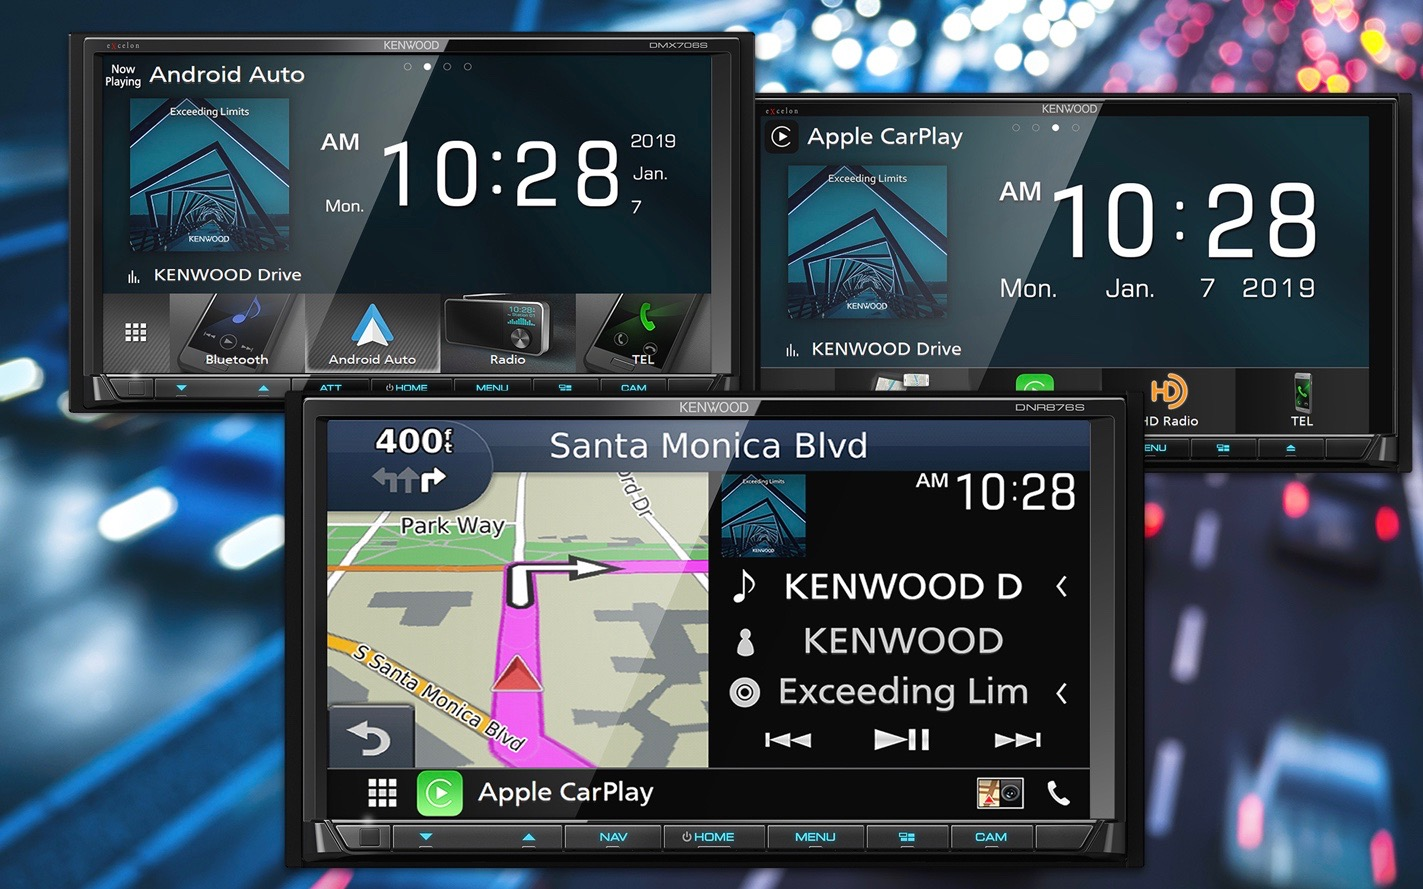 Kenwood announces 7 new CarPlay receivers starting at $600 - 9to5Mac